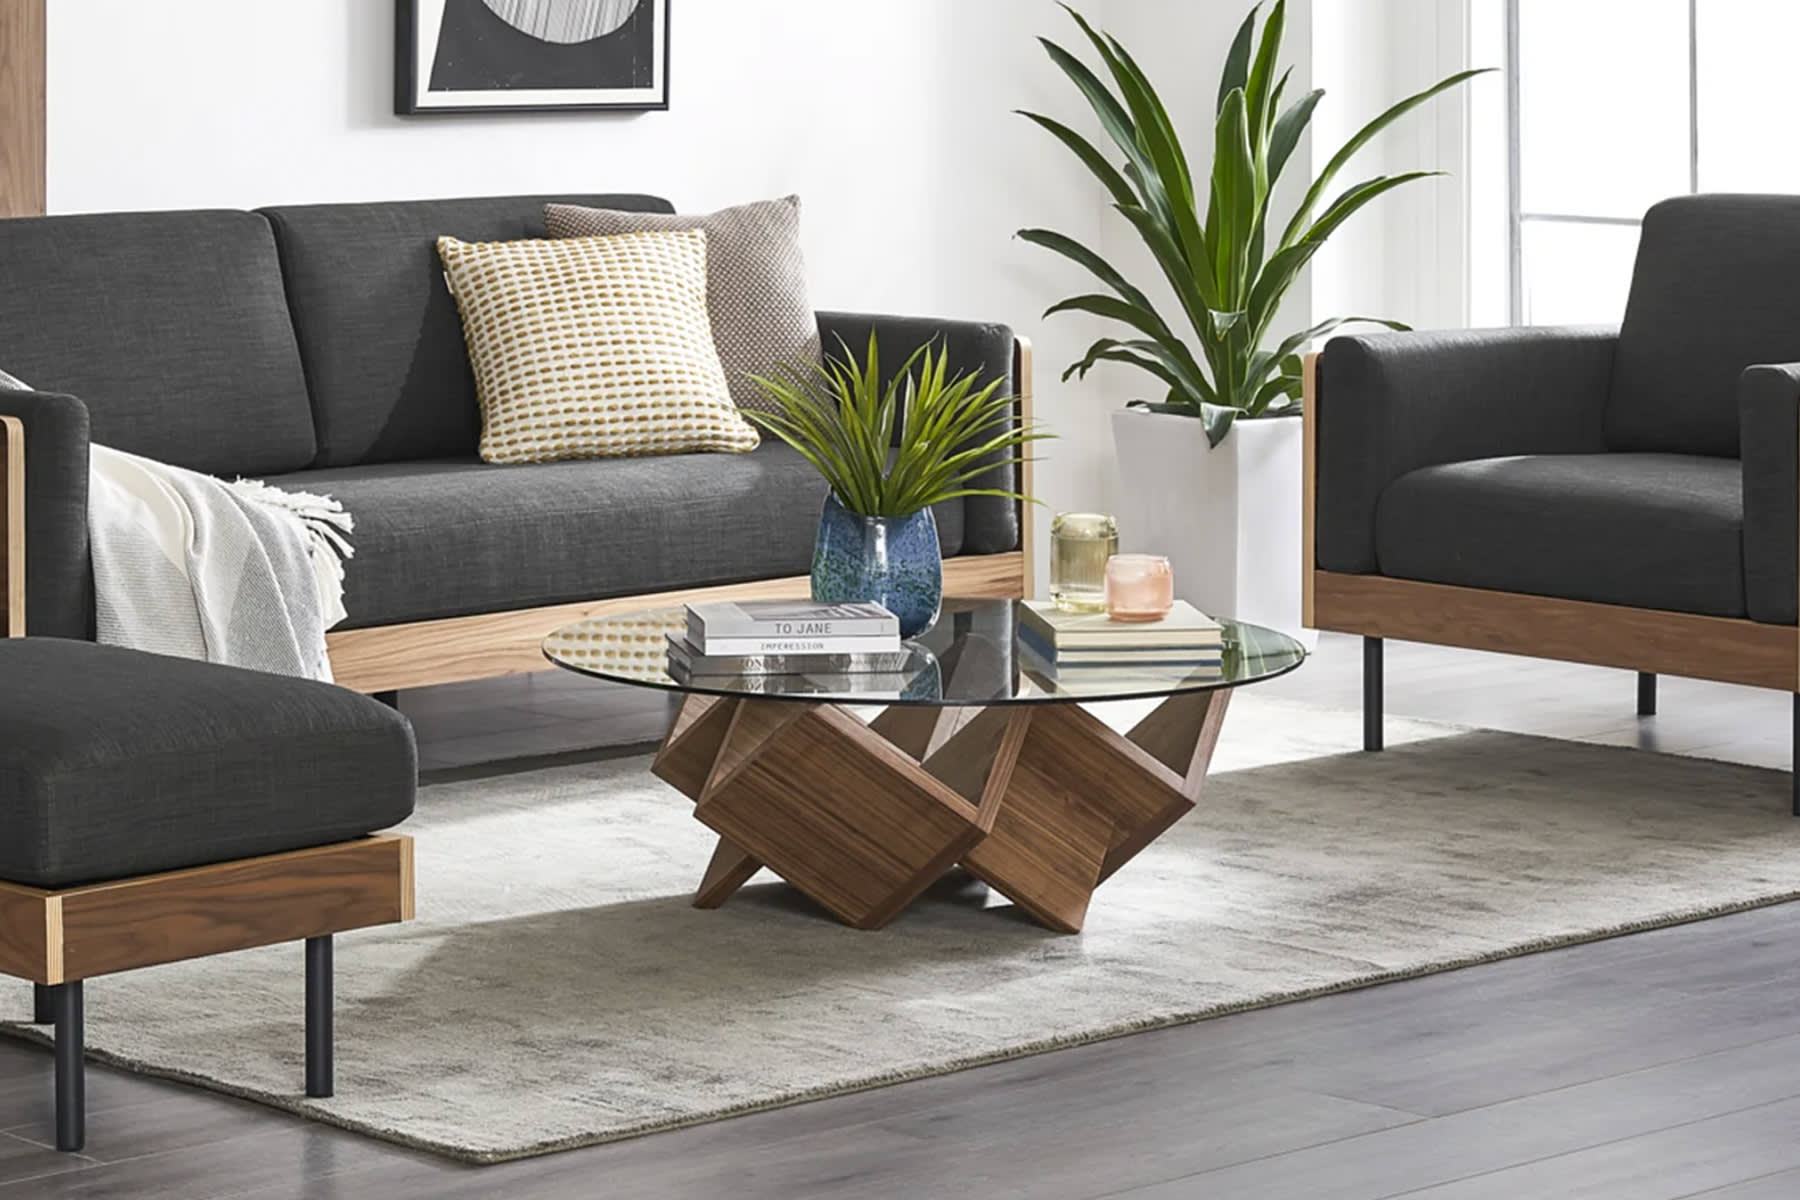 geometric wood and glass coffee table and fabric sofa set